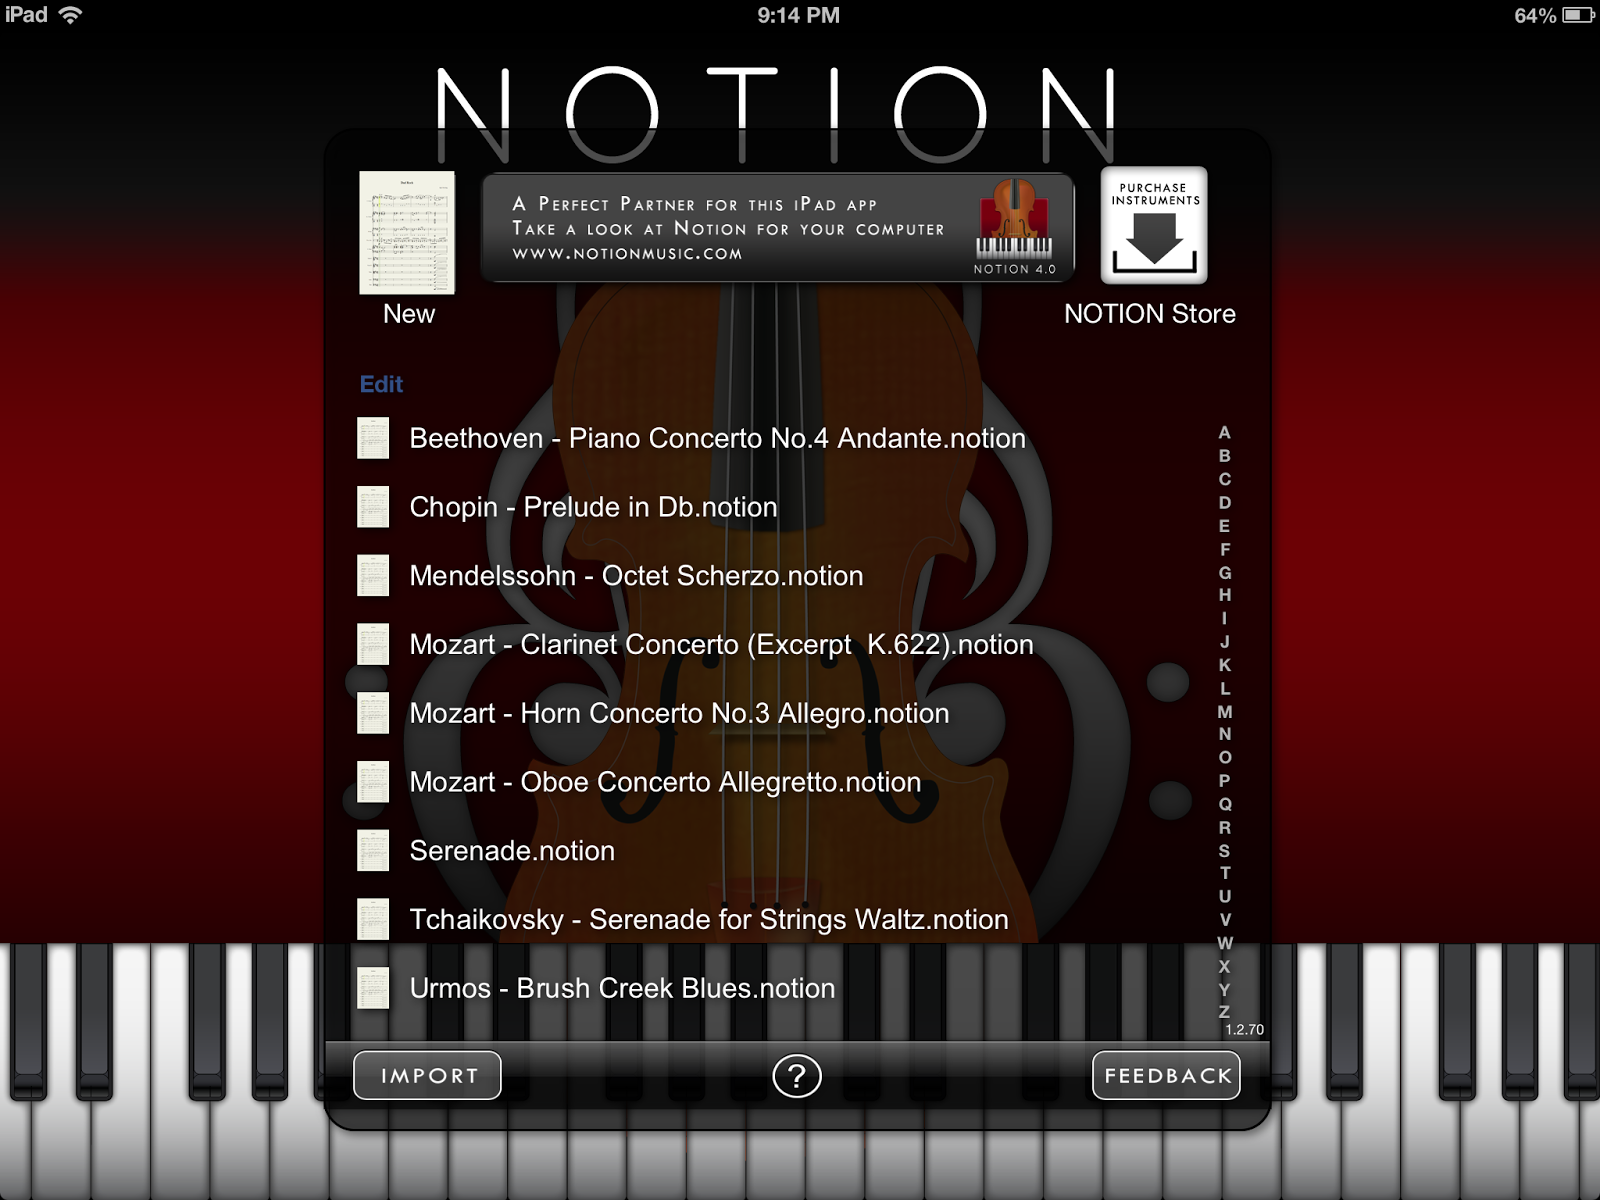 NOTION Una nueva forma de editar partituras